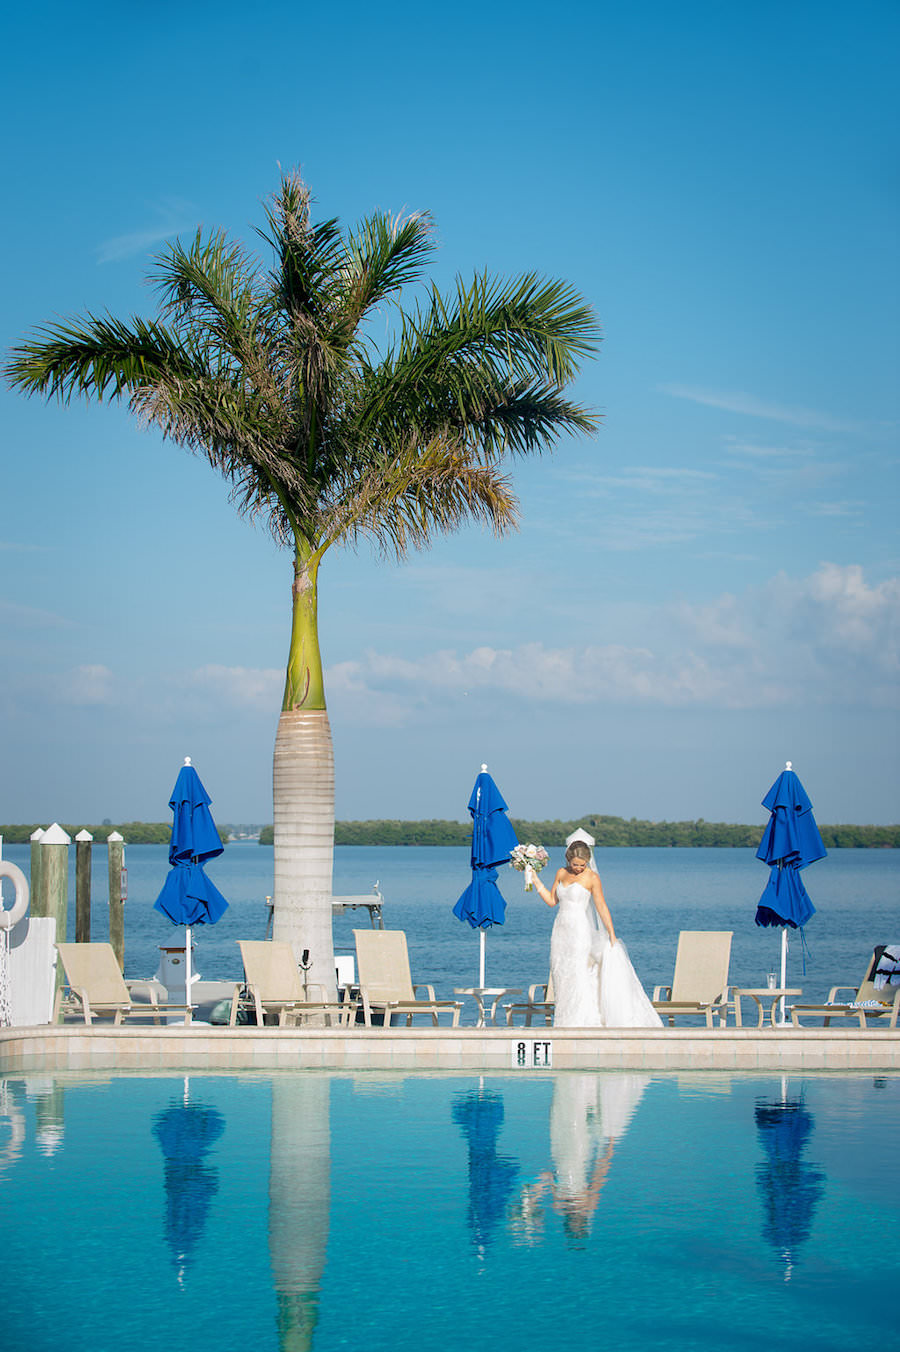 Waterfront Poolside Bride Wedding Day Portrait in Ines di Santo Strapless Sweetheart Wedding Dress with Lace with White and Blush Pink Dusty Rose Wedding Bouquet with Succulents and Greenery | Clearwater Beach Wedding Photographer Marc Edwards Photographs